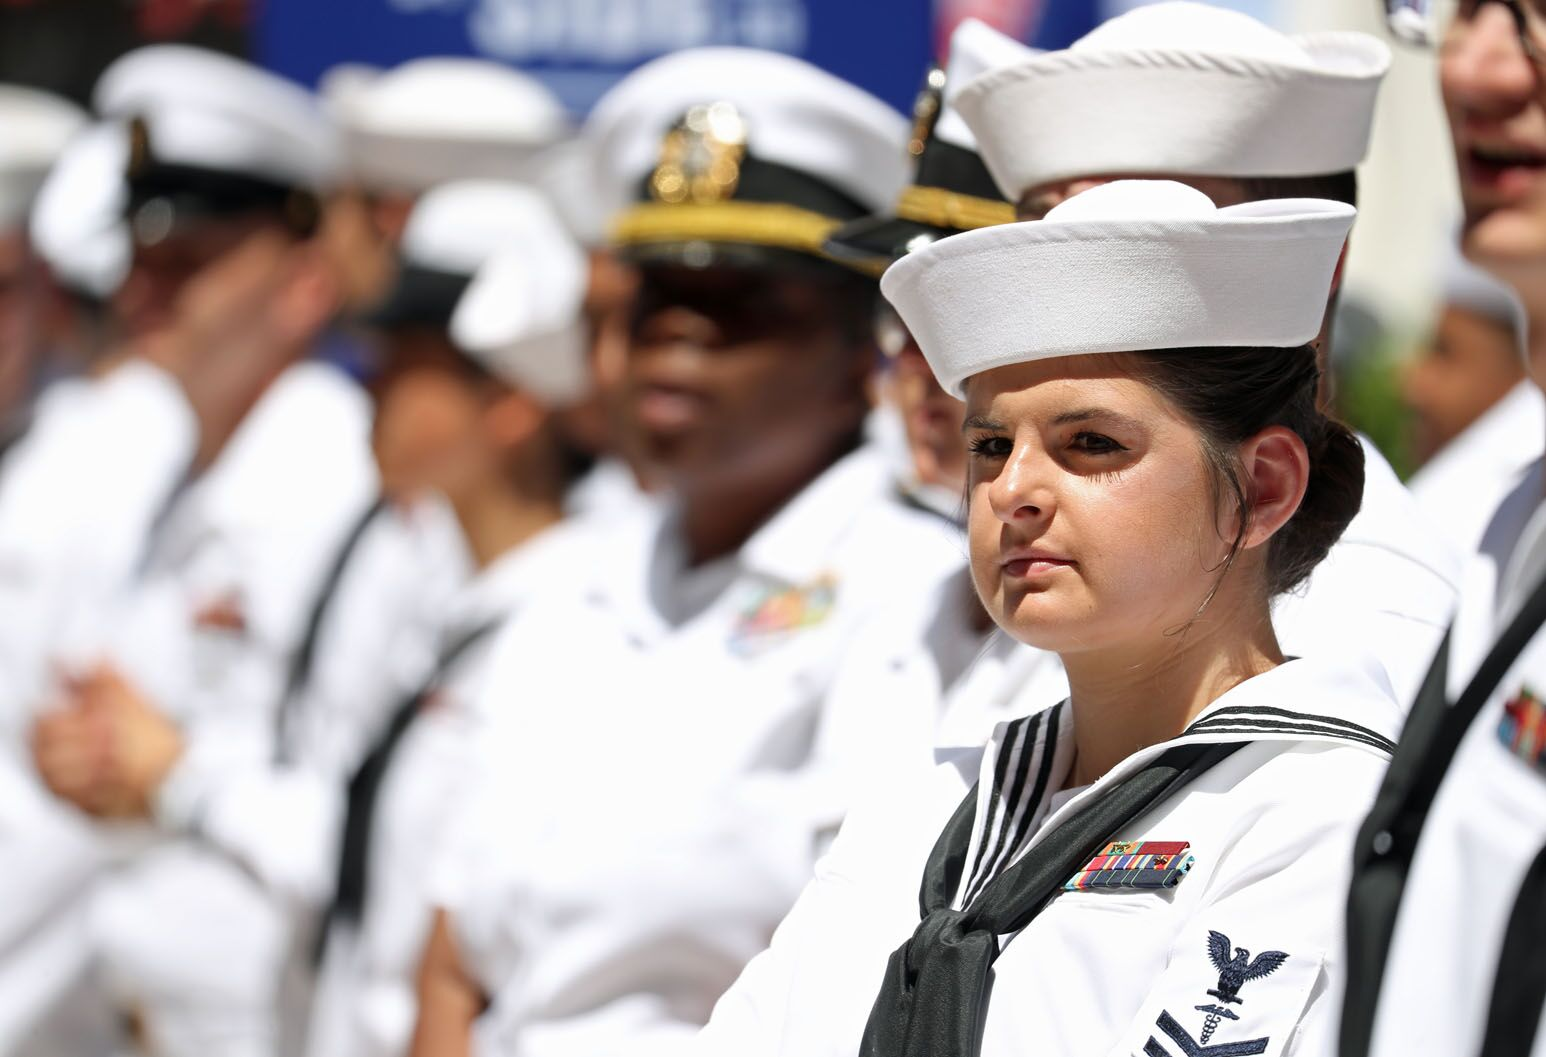 A female sailor stands in line with her colleagues during Northwell's Side by Side: A Celebration of Service™